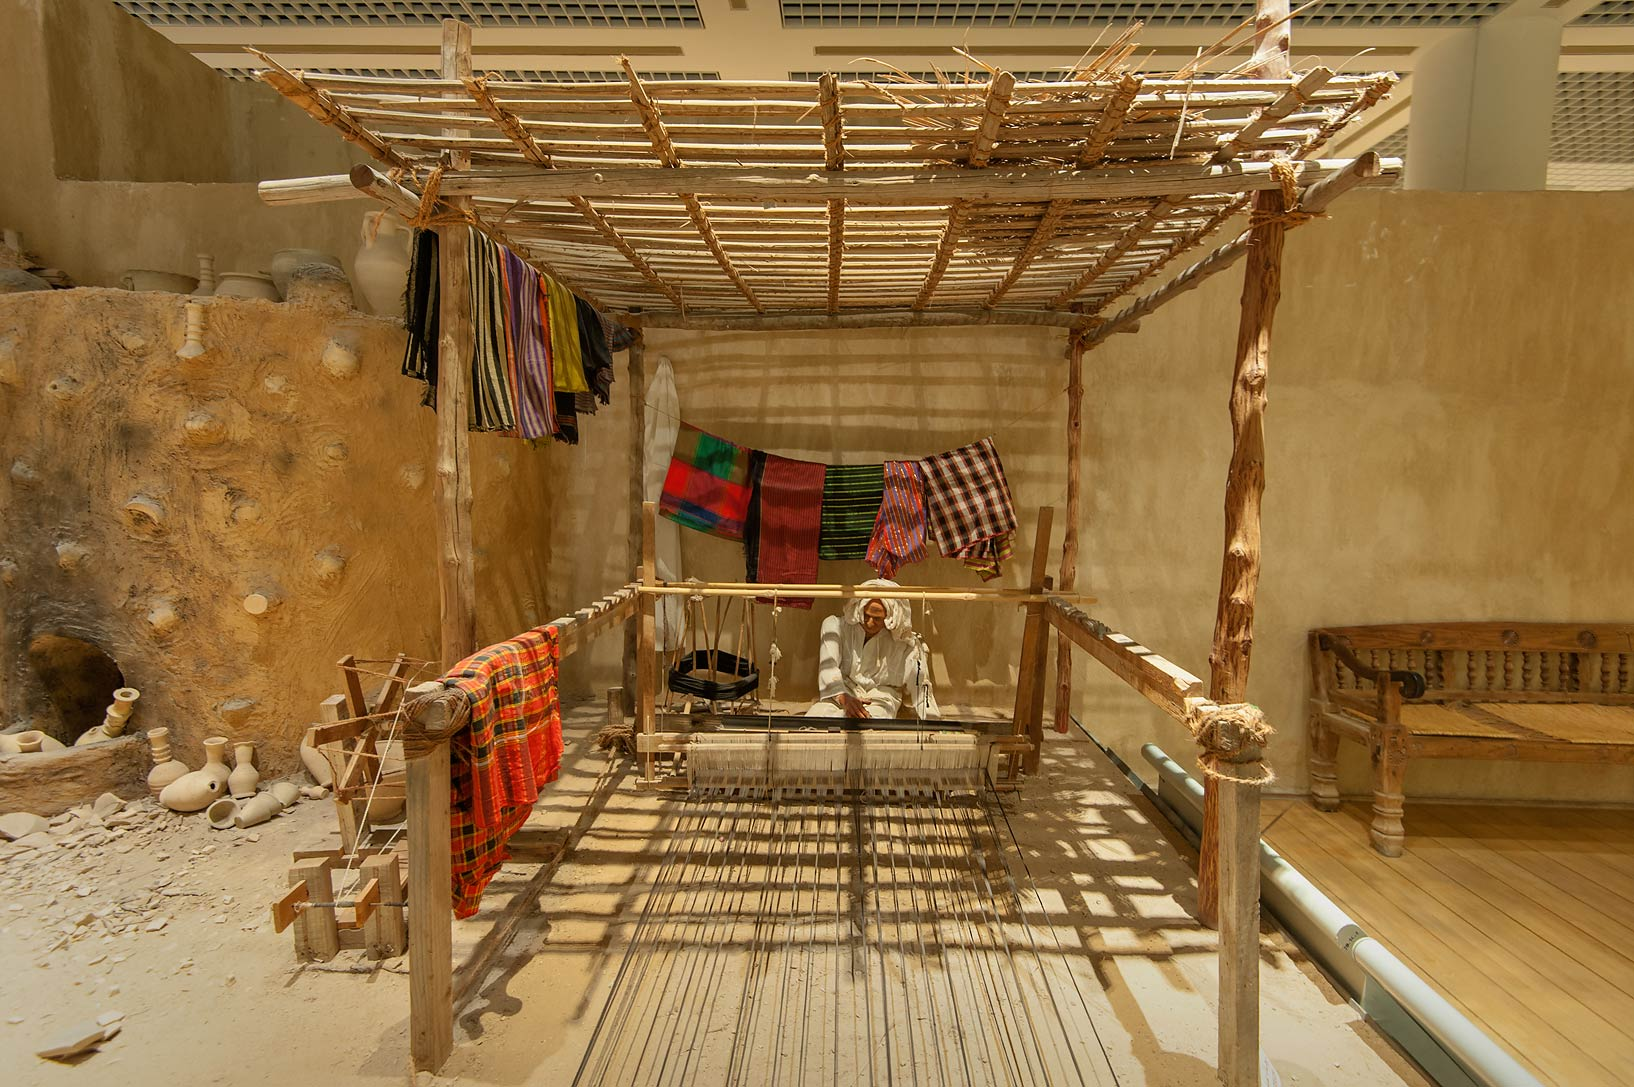 Exhibition of lifestyle in Bahrain National Museum. Manama, Bahrain